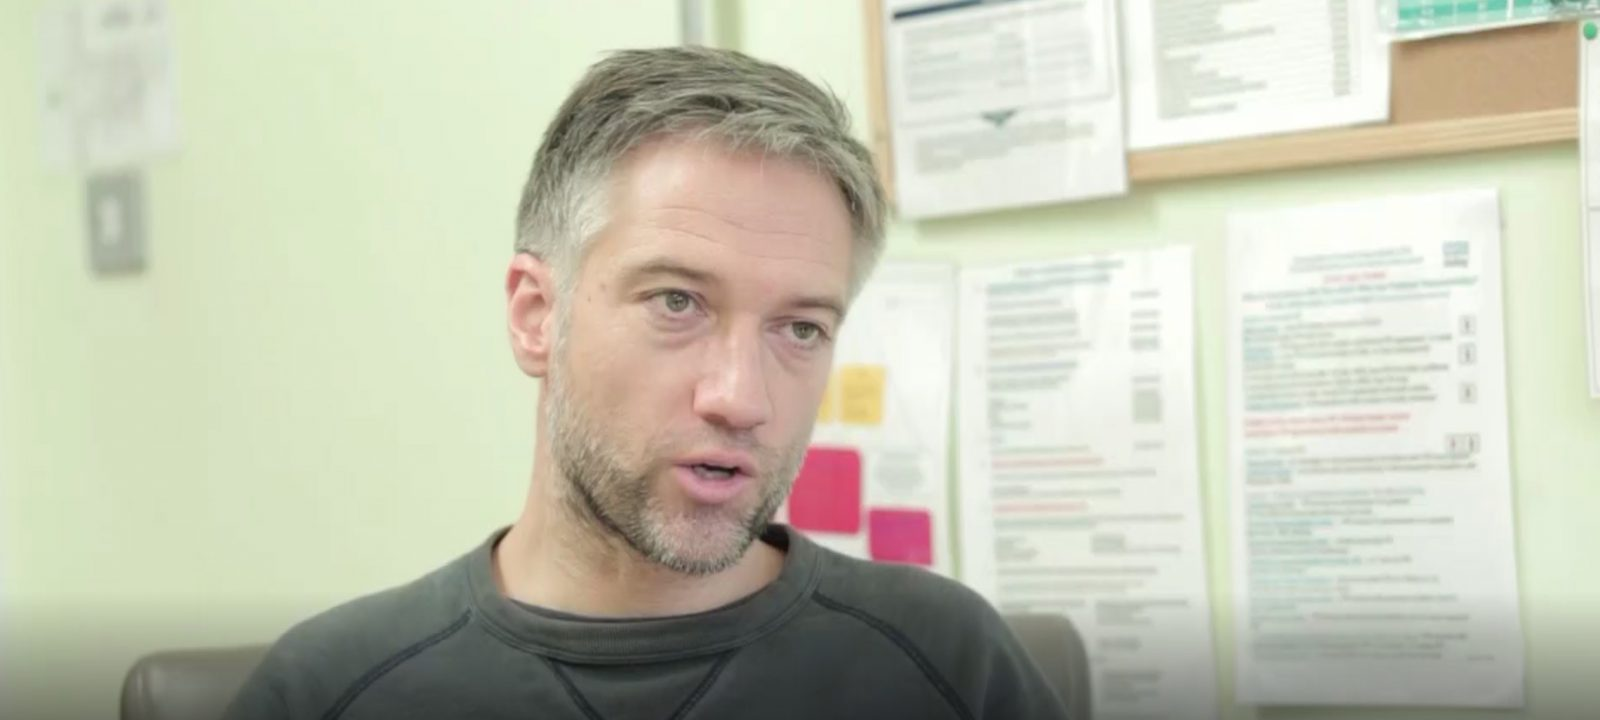 Consultation: middle-aged man with asthma and poor MDI technique